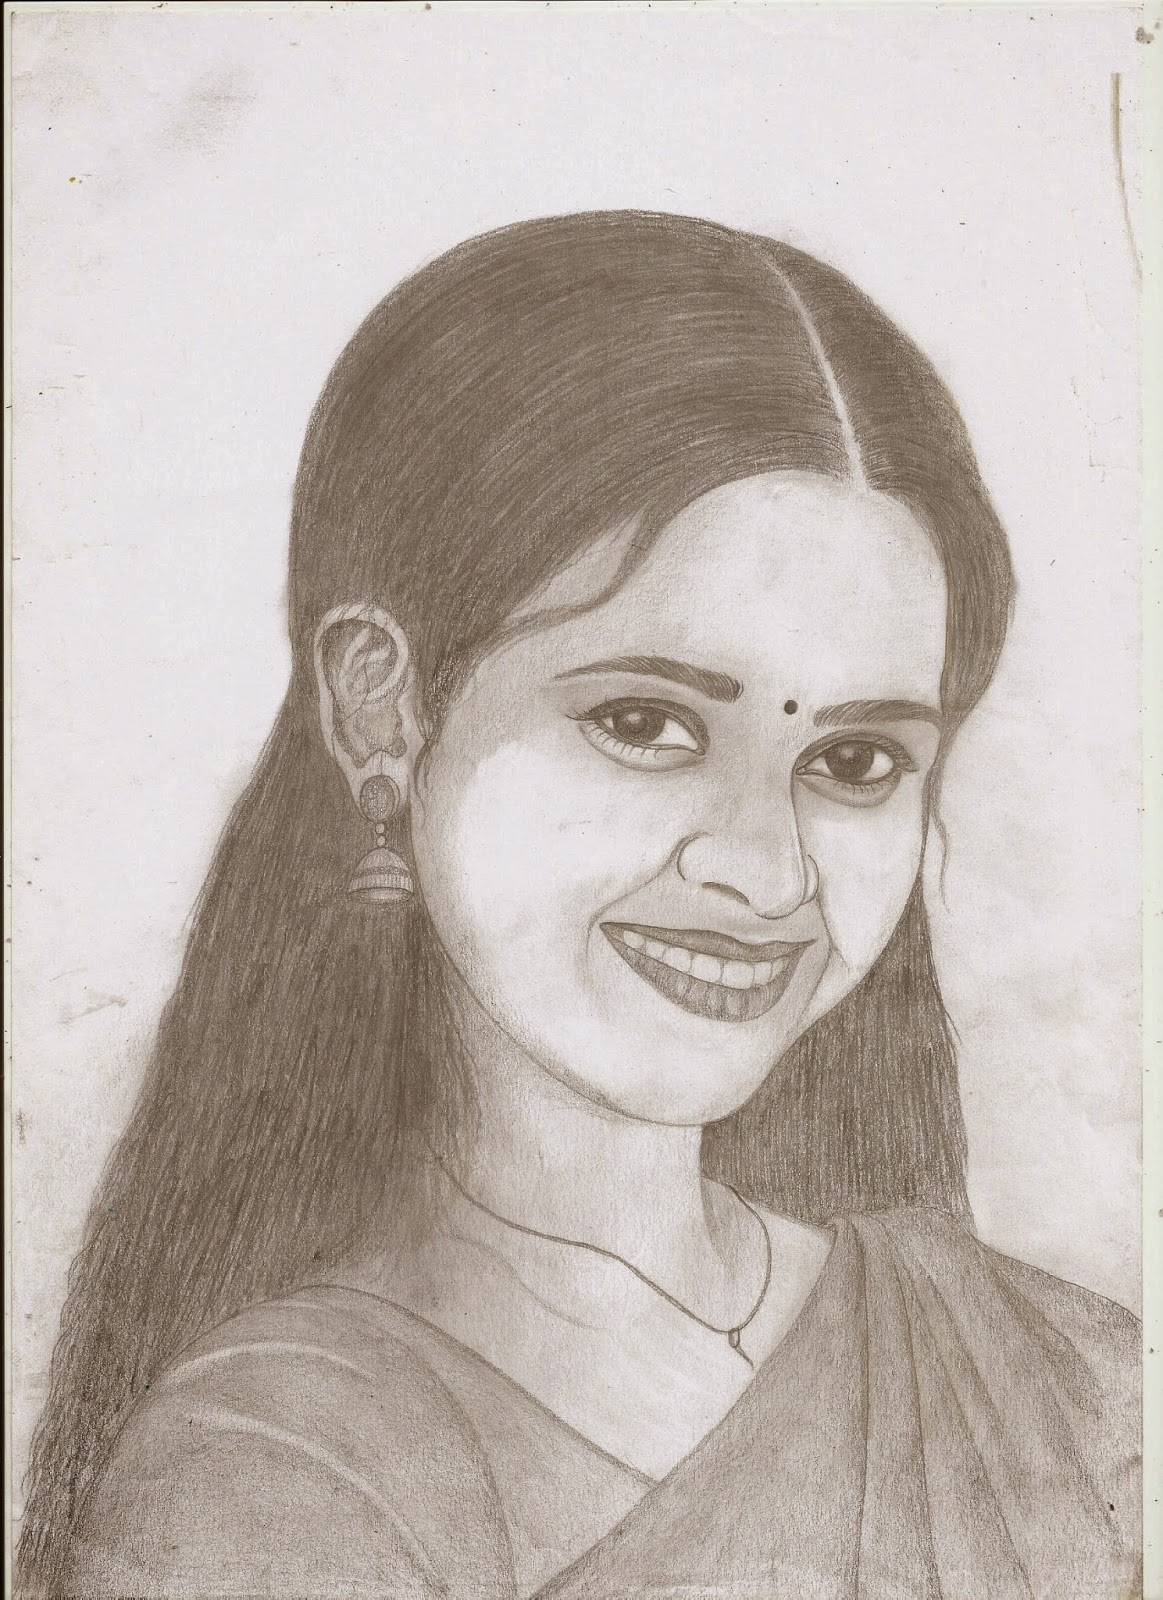 Jackhi pencil drawing sri divya pencil sketch actress sri divya